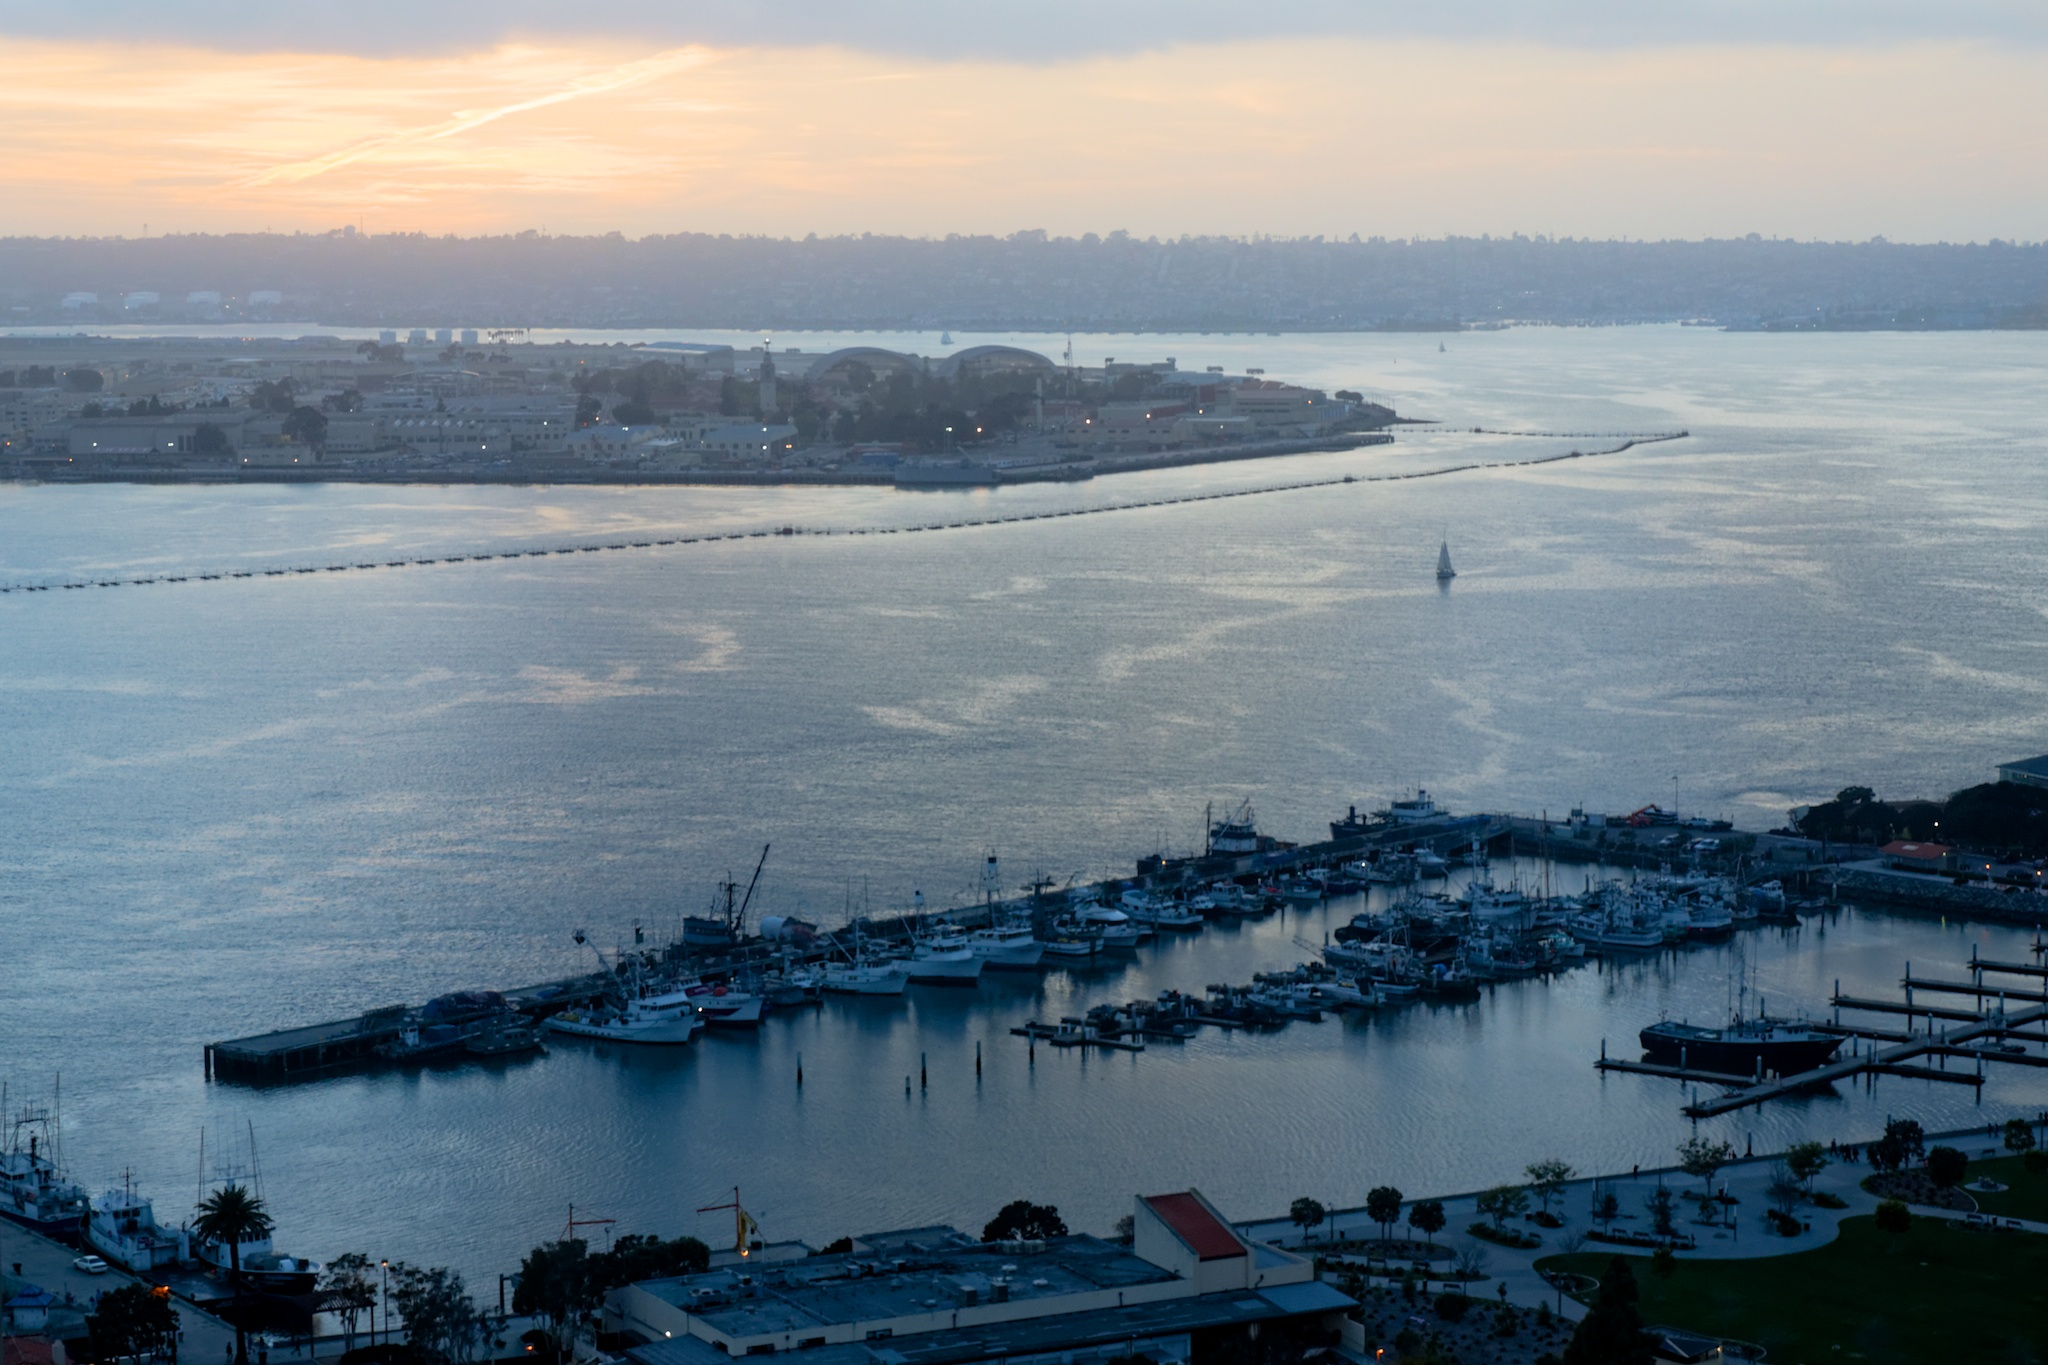 Sunset over San Diego harbour, lovely orange colours over grey water.